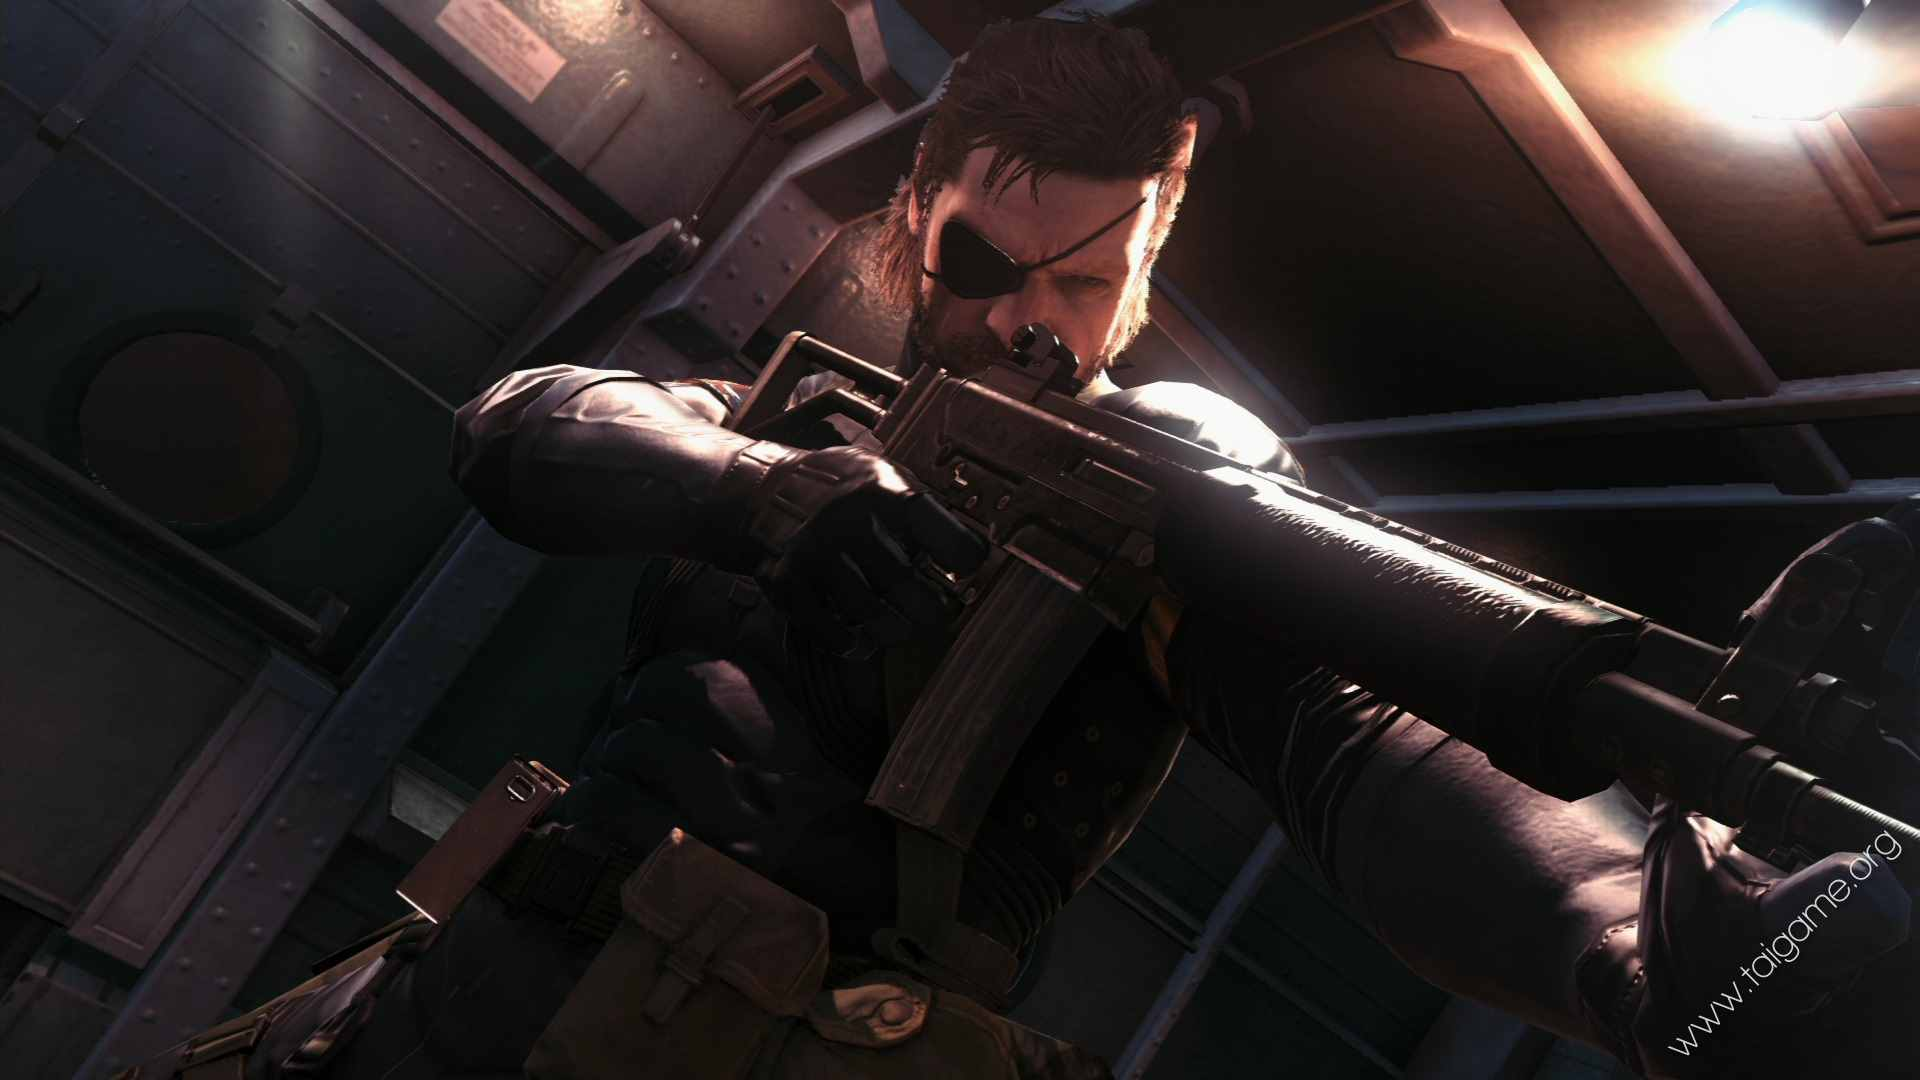 Metal Gear Solid Ground Zeroes Video Game 4k Hd Desktop: Metal Gear Solid V: Ground Zeroes